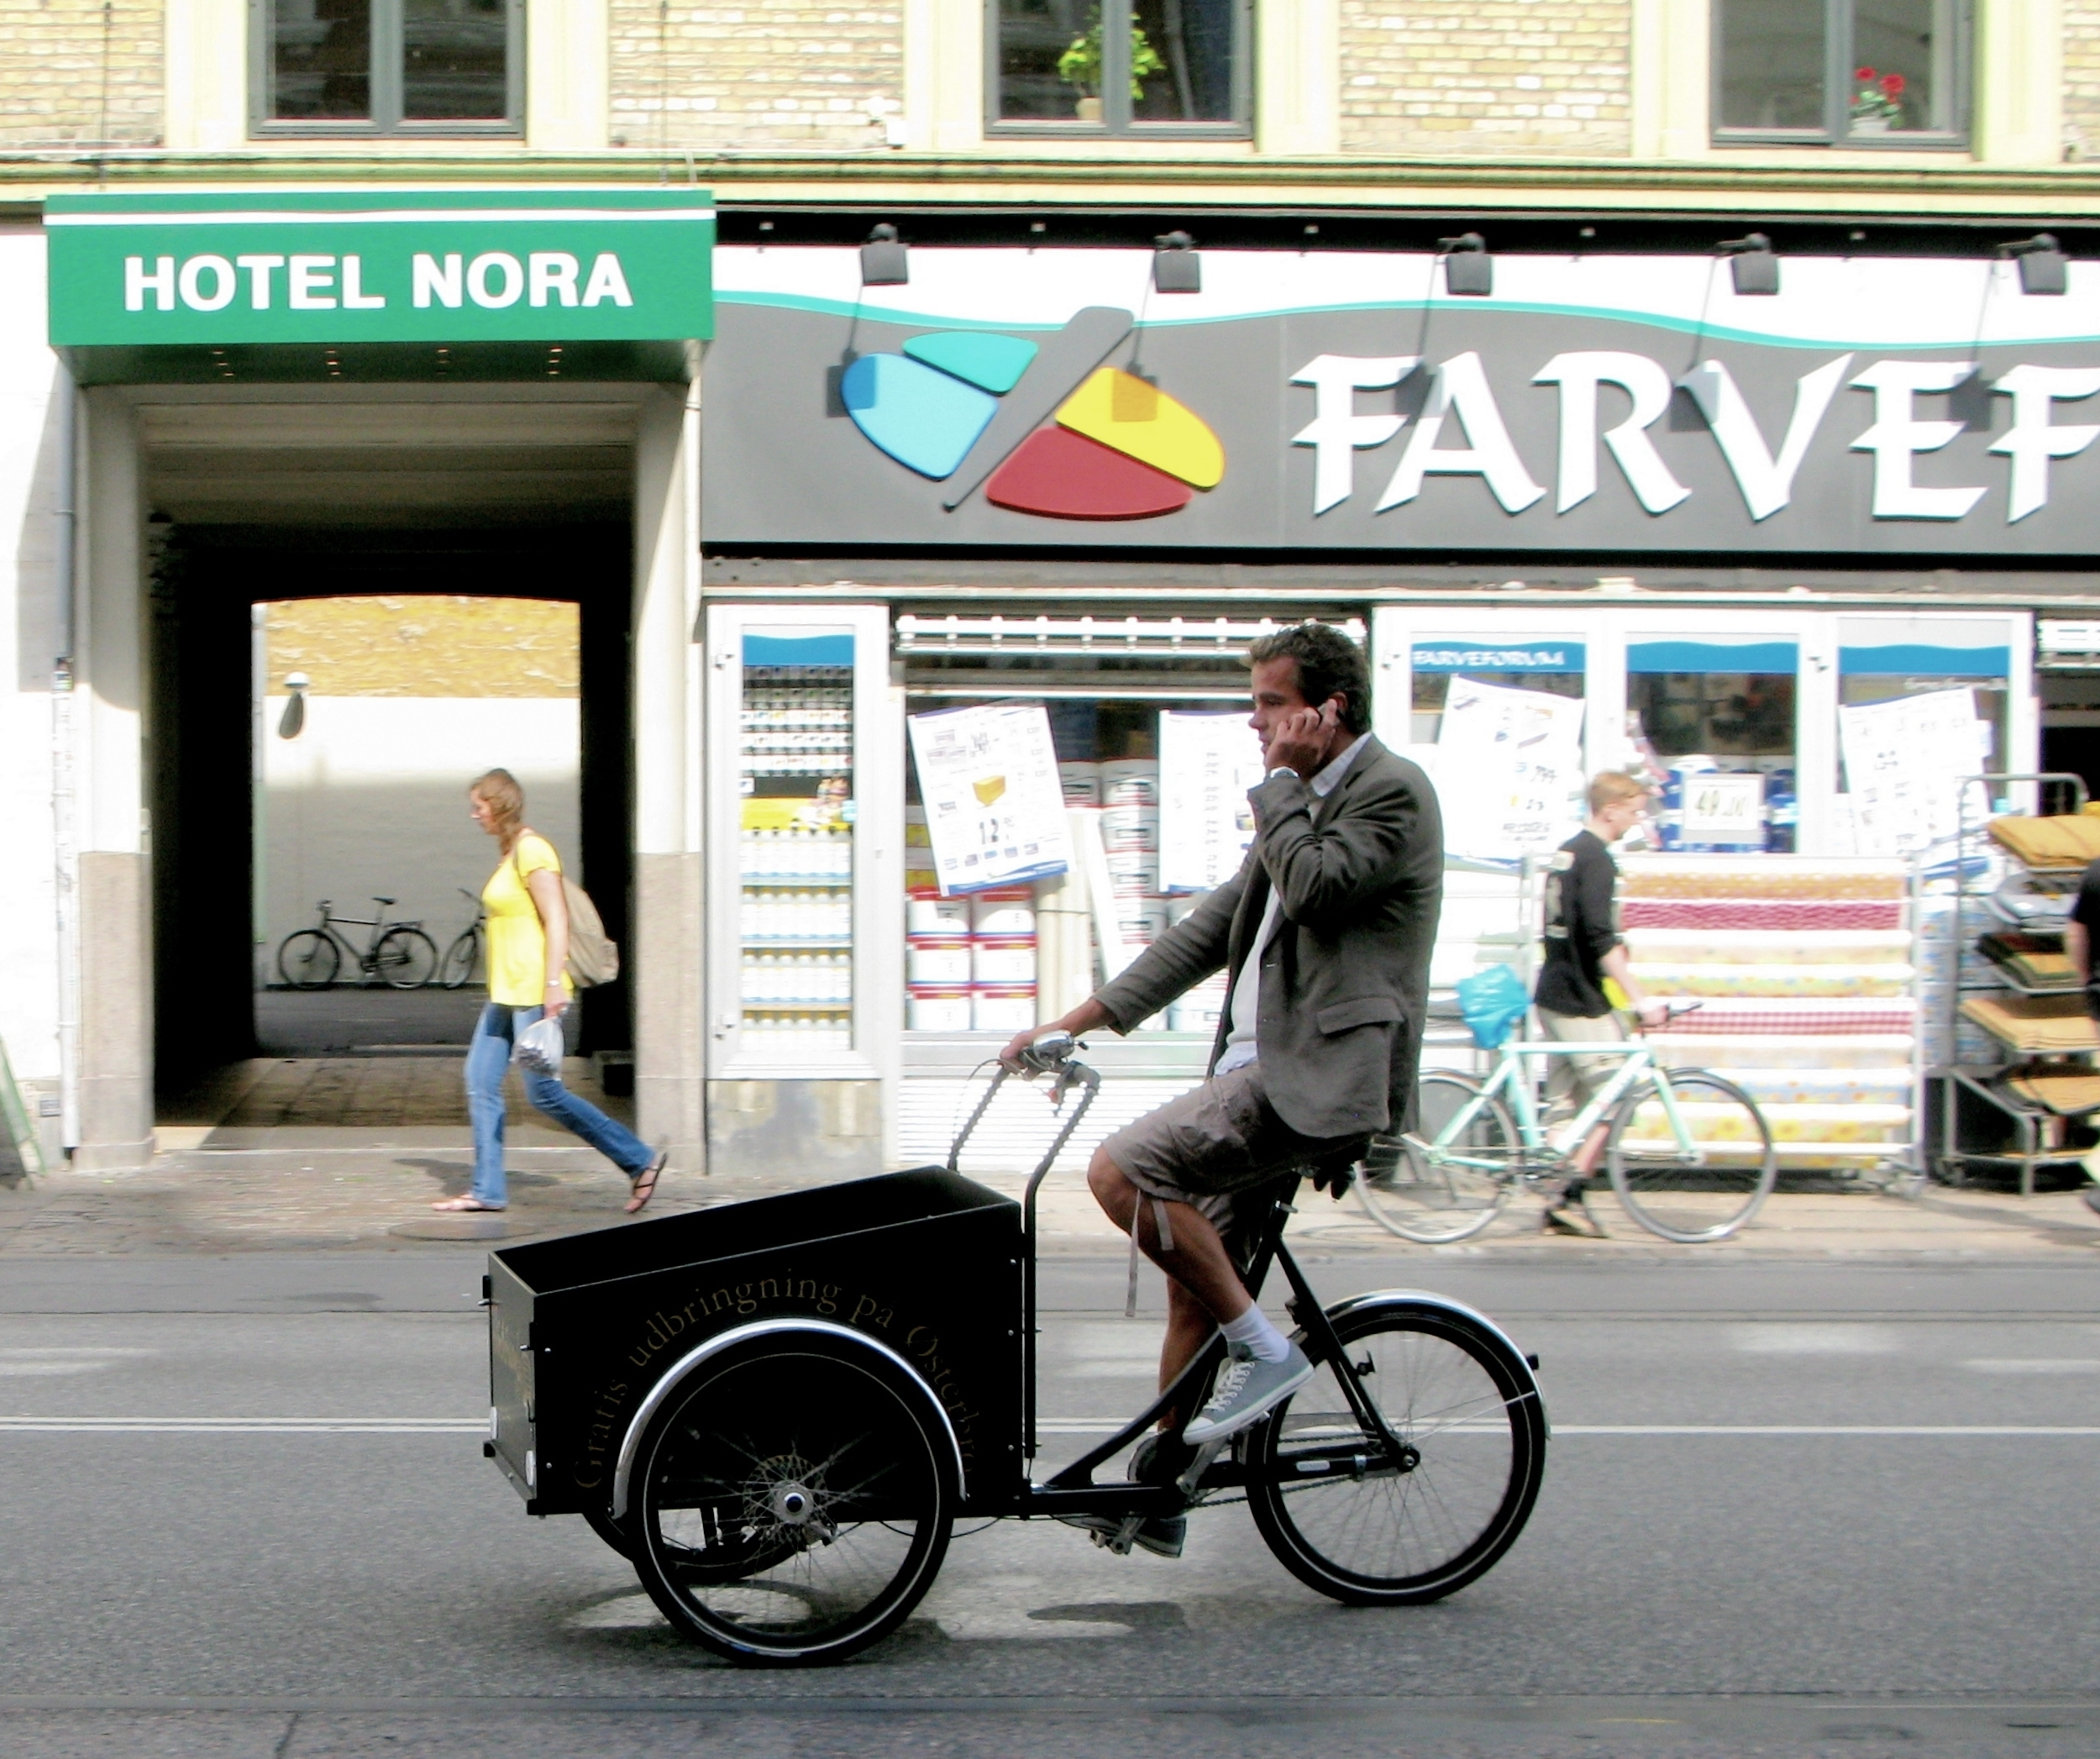 A man riding a cargo bike and making a phone call